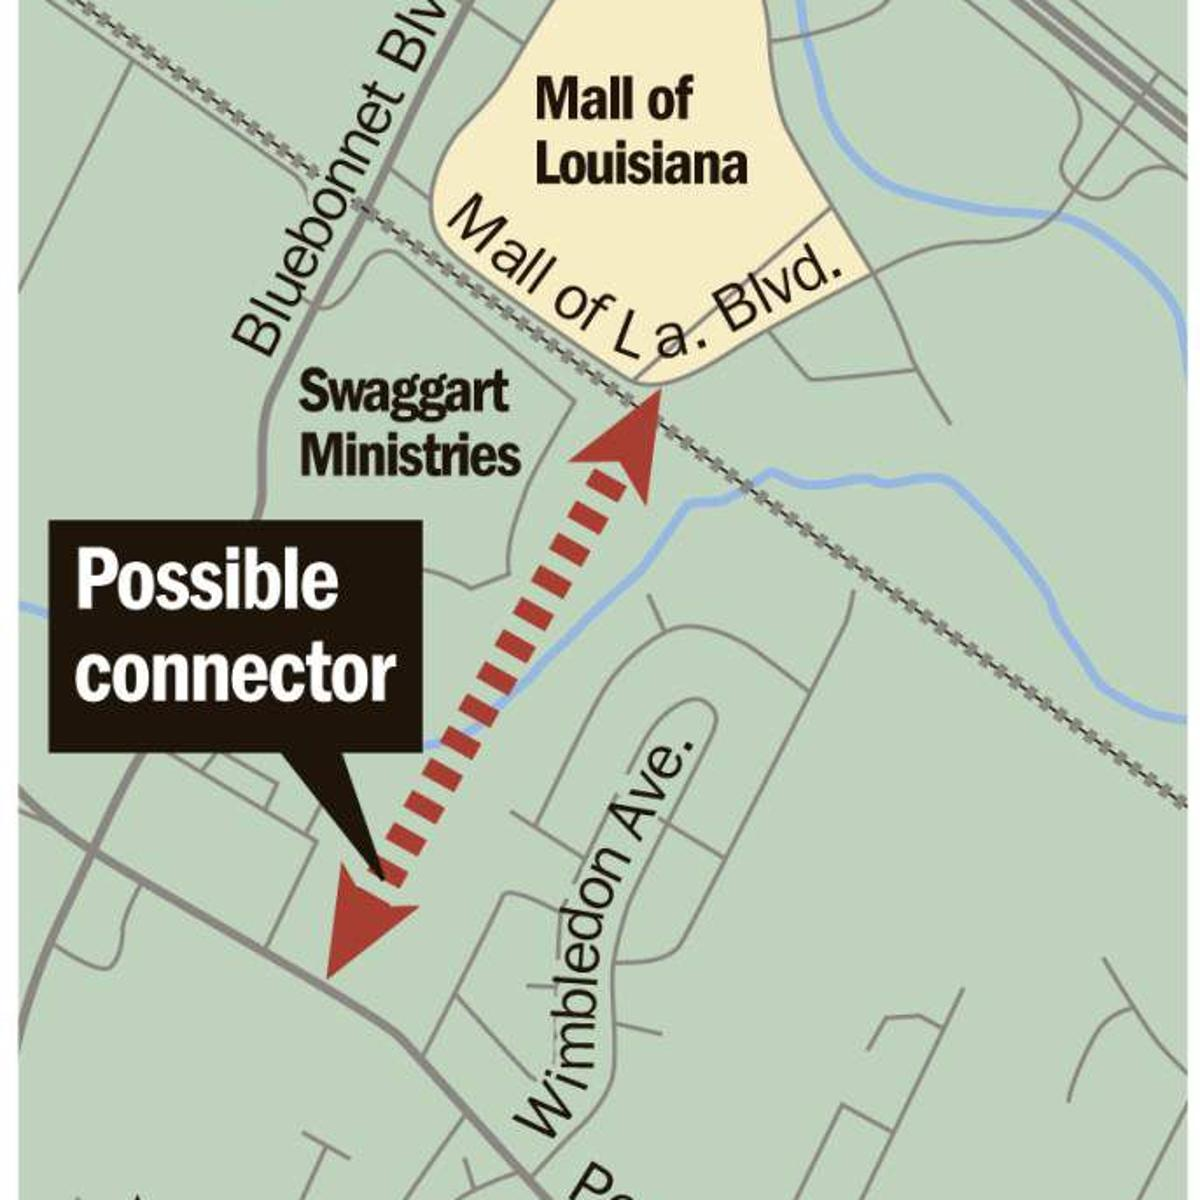 Metro Council takes step toward making Picardy-Perkins ... on augusta mall map, west town mall map, southland mall map, the maine mall map, valley plaza mall map, columbia mall map, carolina place mall map, baybrook mall inside map, cumberland mall map, greenville mall map, greenwood mall map, cortana mall map, woodbridge center map, fresno fashion fair map, the parks at arlington map, the shops at la cantera map, city of louisiana map, the oaks mall map, magnolia cemetery map,